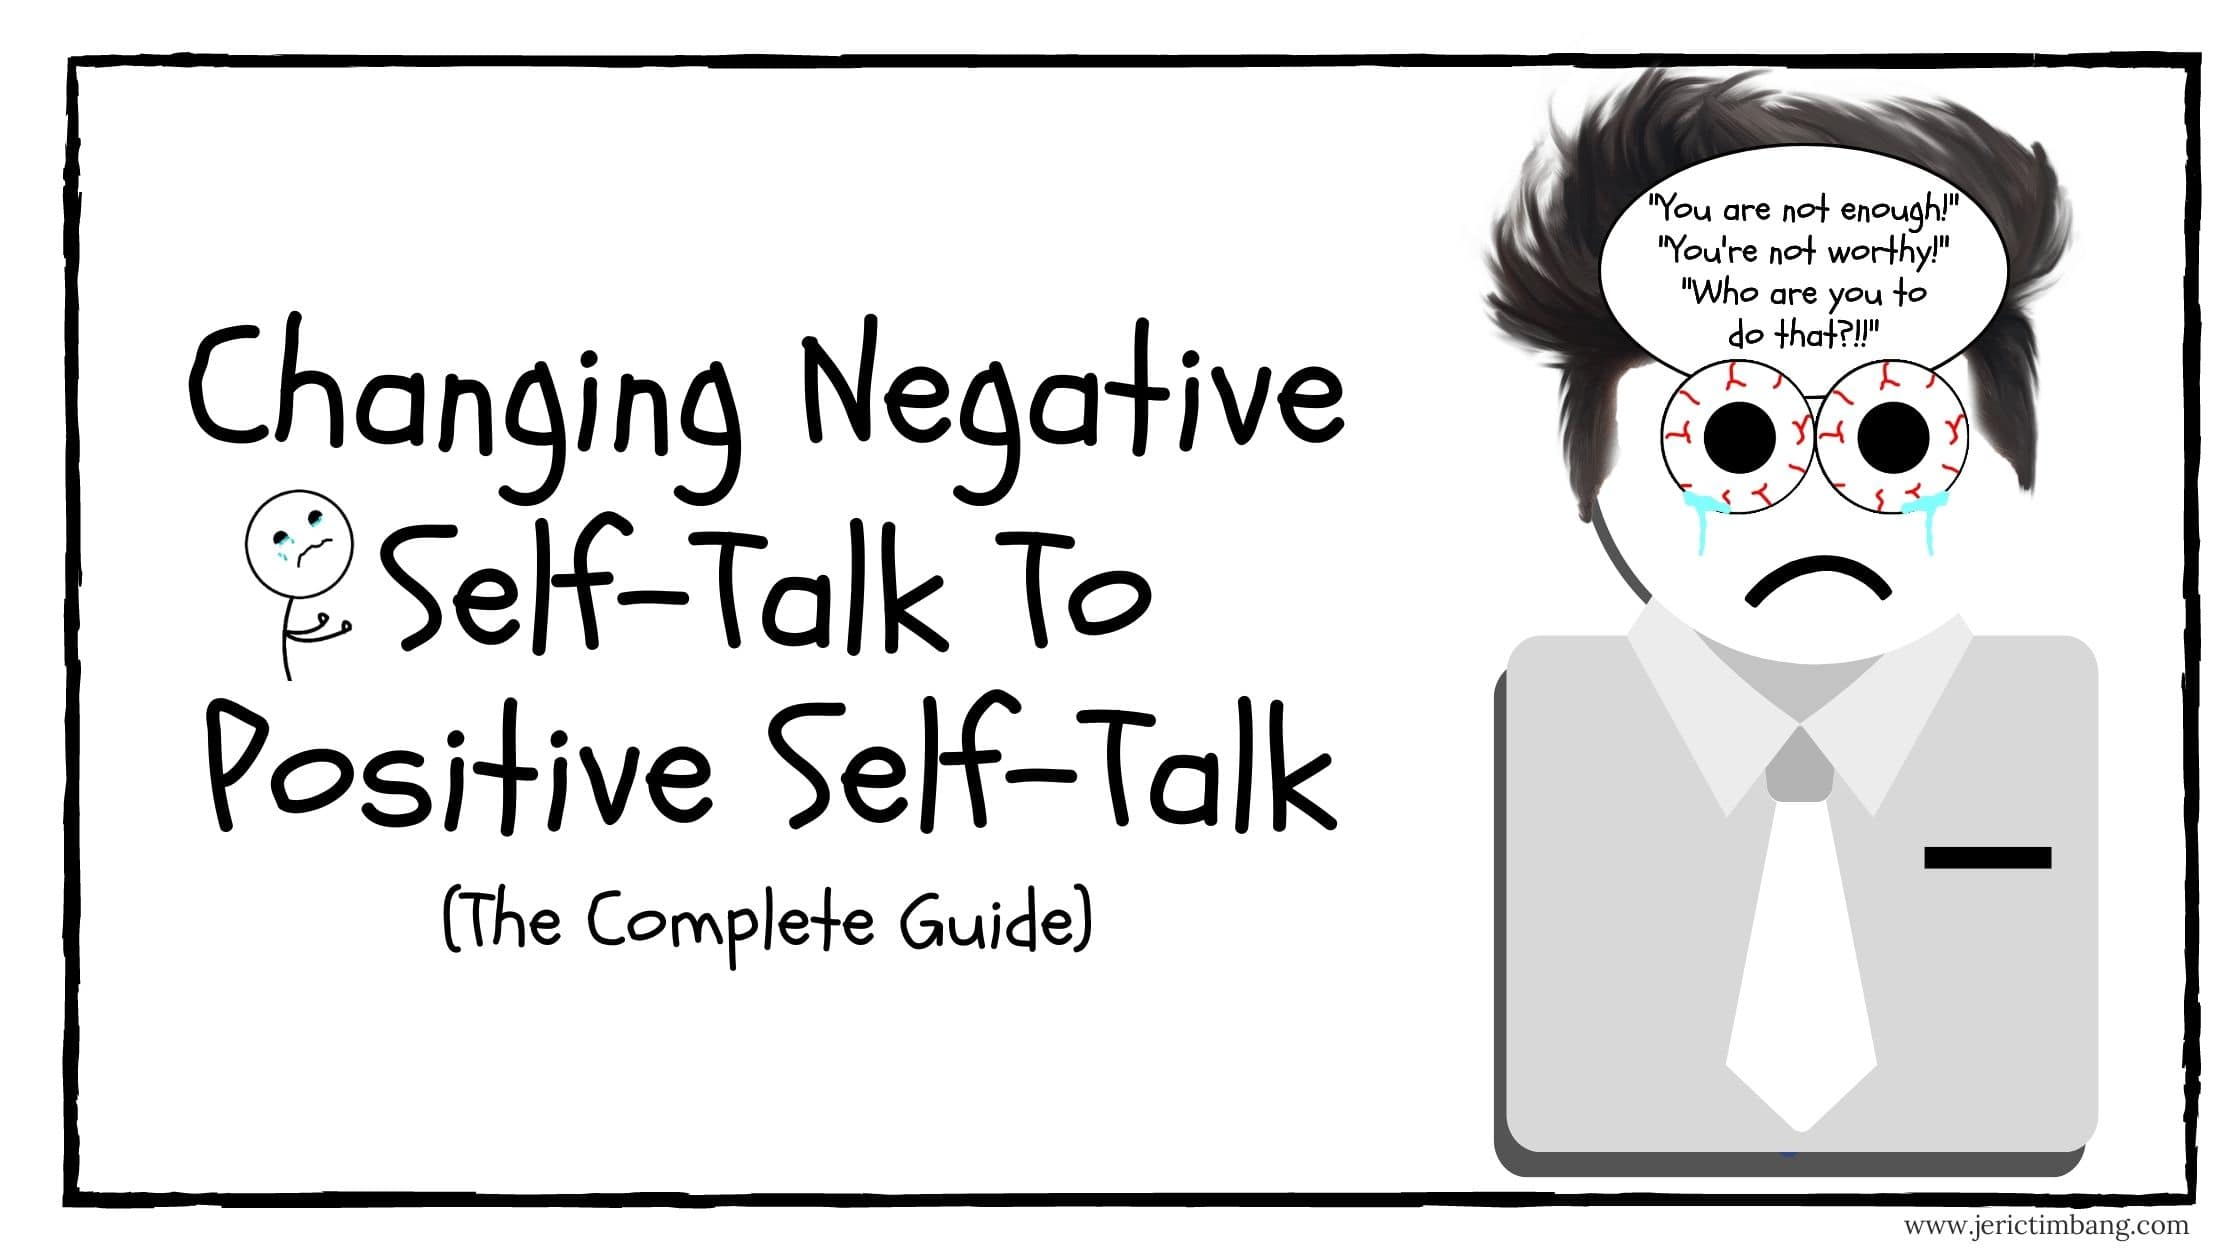 Changing Negative Self Talk To Positive Self Talk: The Complete Guide